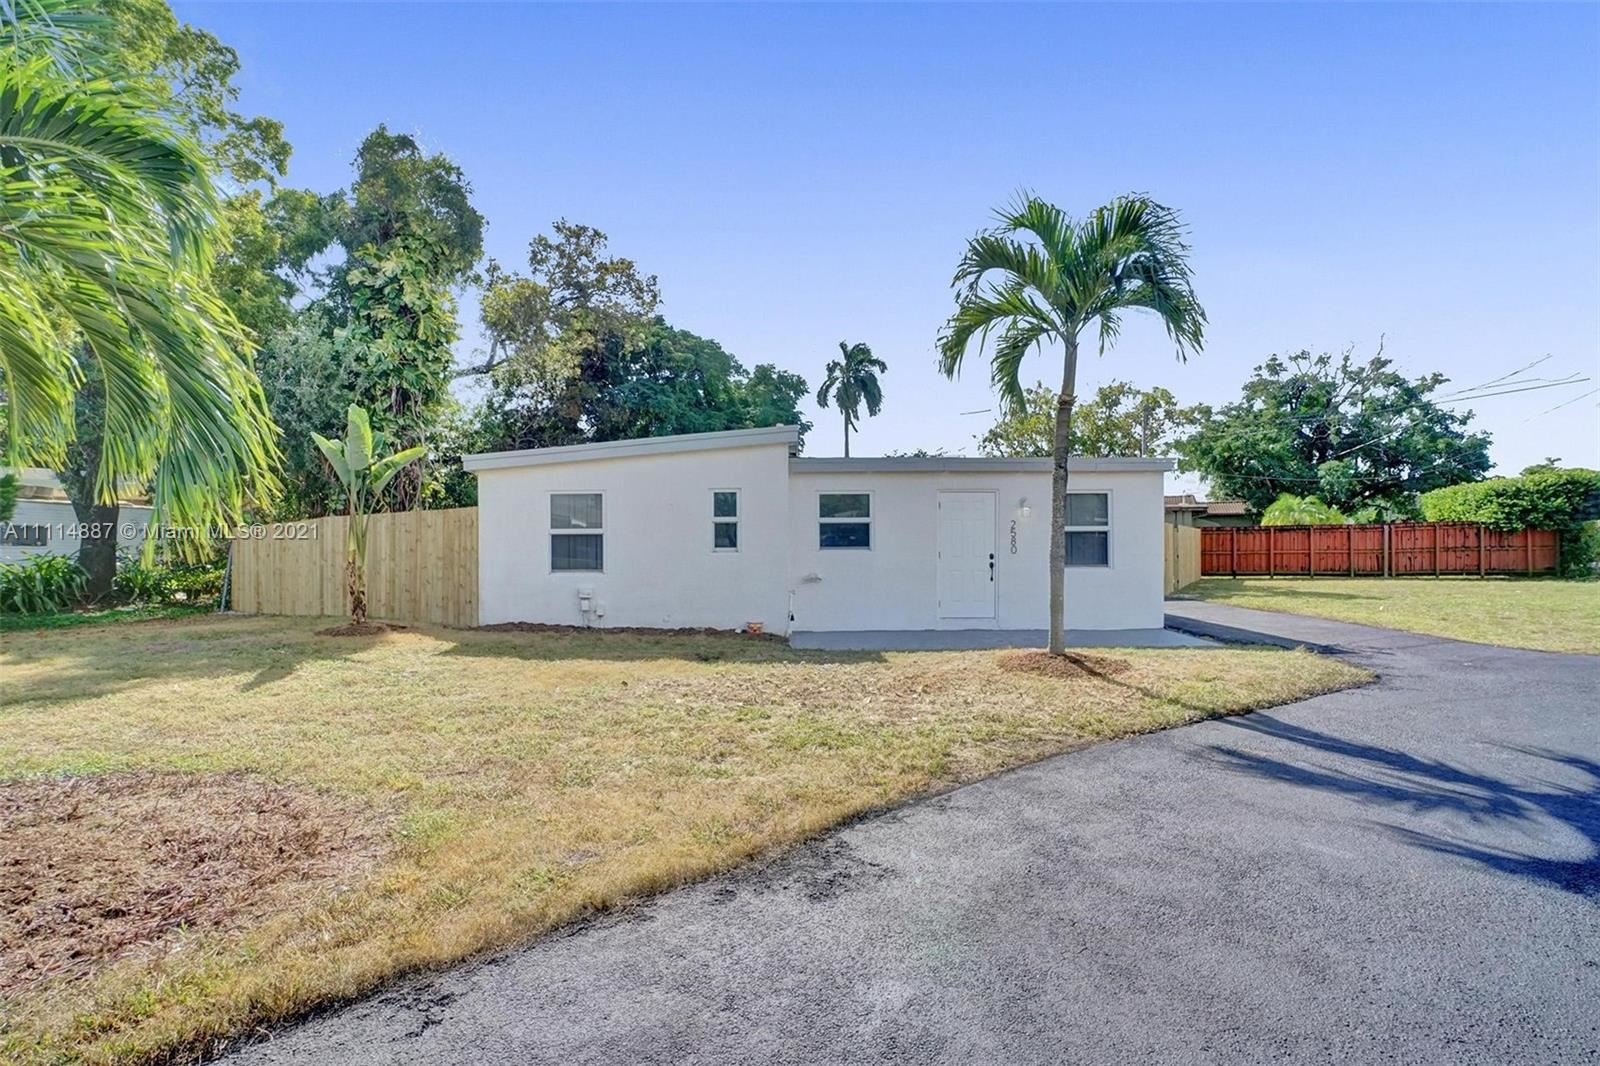 Photo of 2580 SW 6th Ct, Fort Lauderdale, FL 33312 (MLS # A11114887)